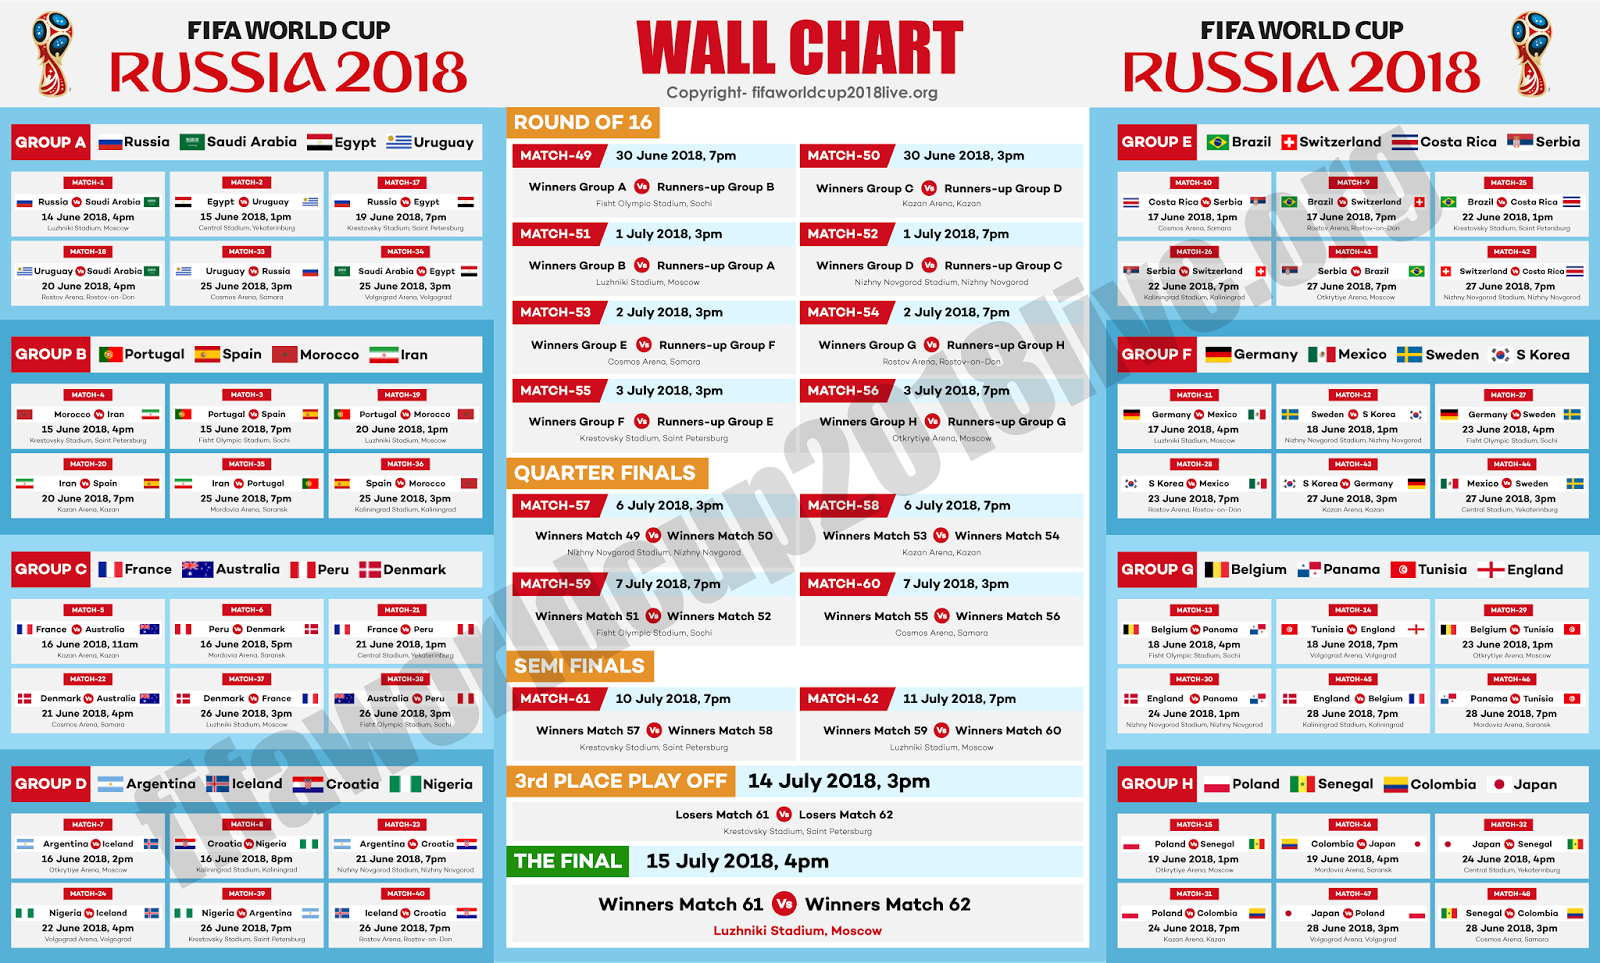 Printable Fifa World Cup 2018 Free Wallchart Pdf Download Fifa World Cup 2018 Live Streami With Images World Cup Fixtures World Cup Match Soccer World Cup 2018